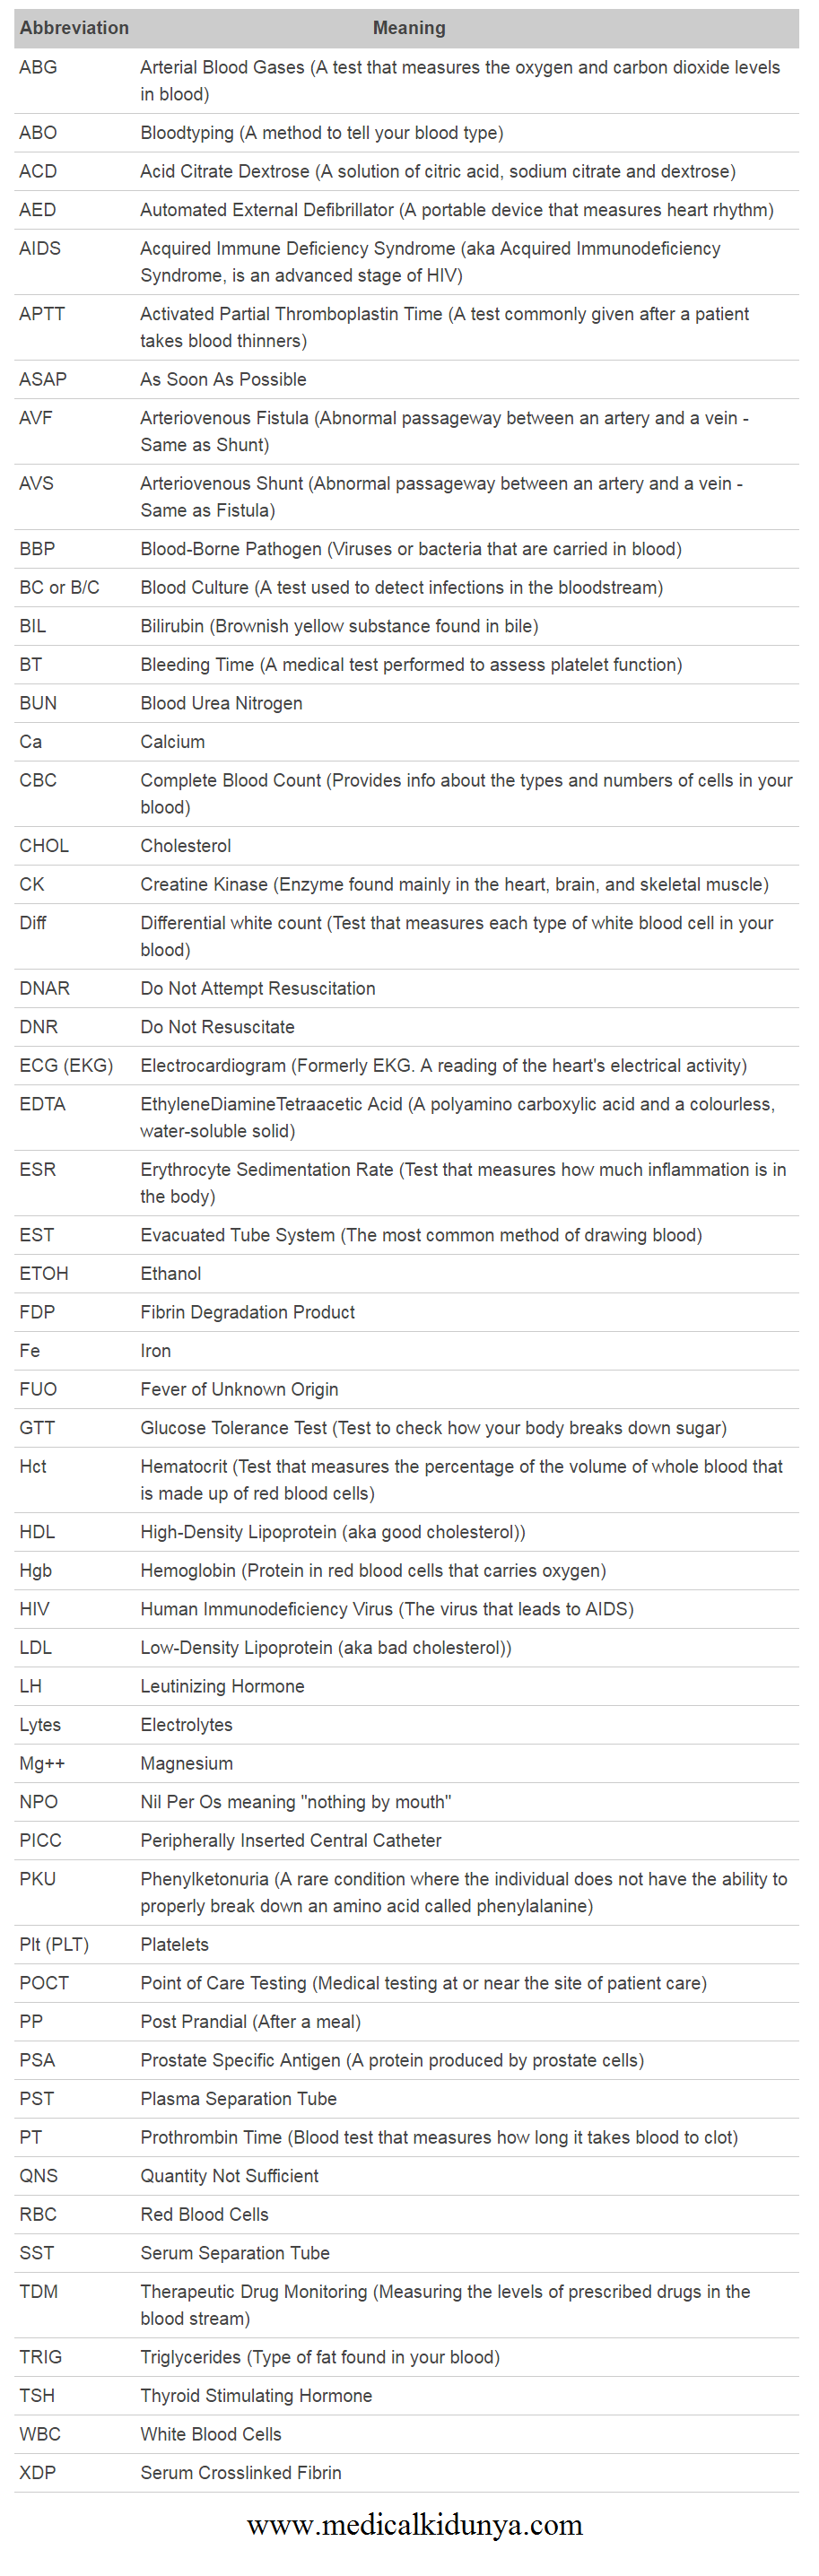 Phlebotomy Abbreviations List